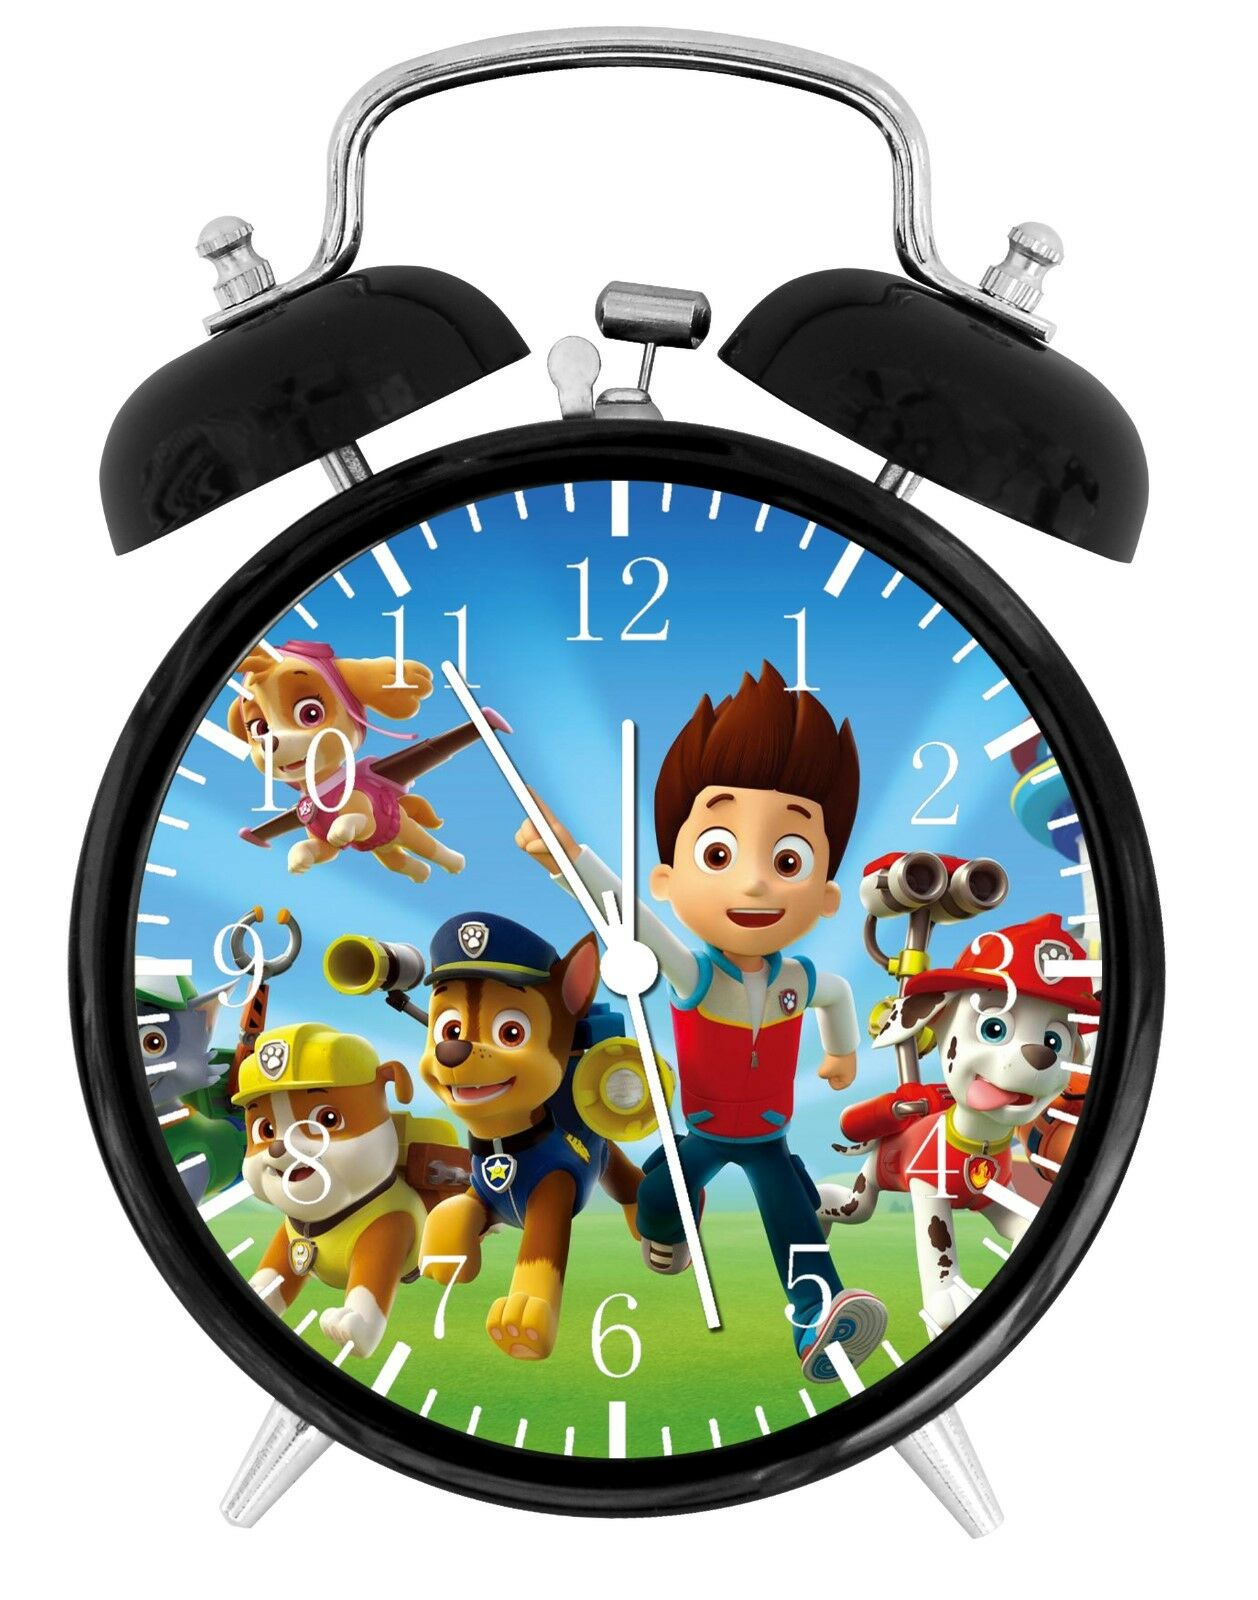 "Paw Patrol Alarm Desk Clock 3.75"" Room Office Decor E45 A Nice Gift"